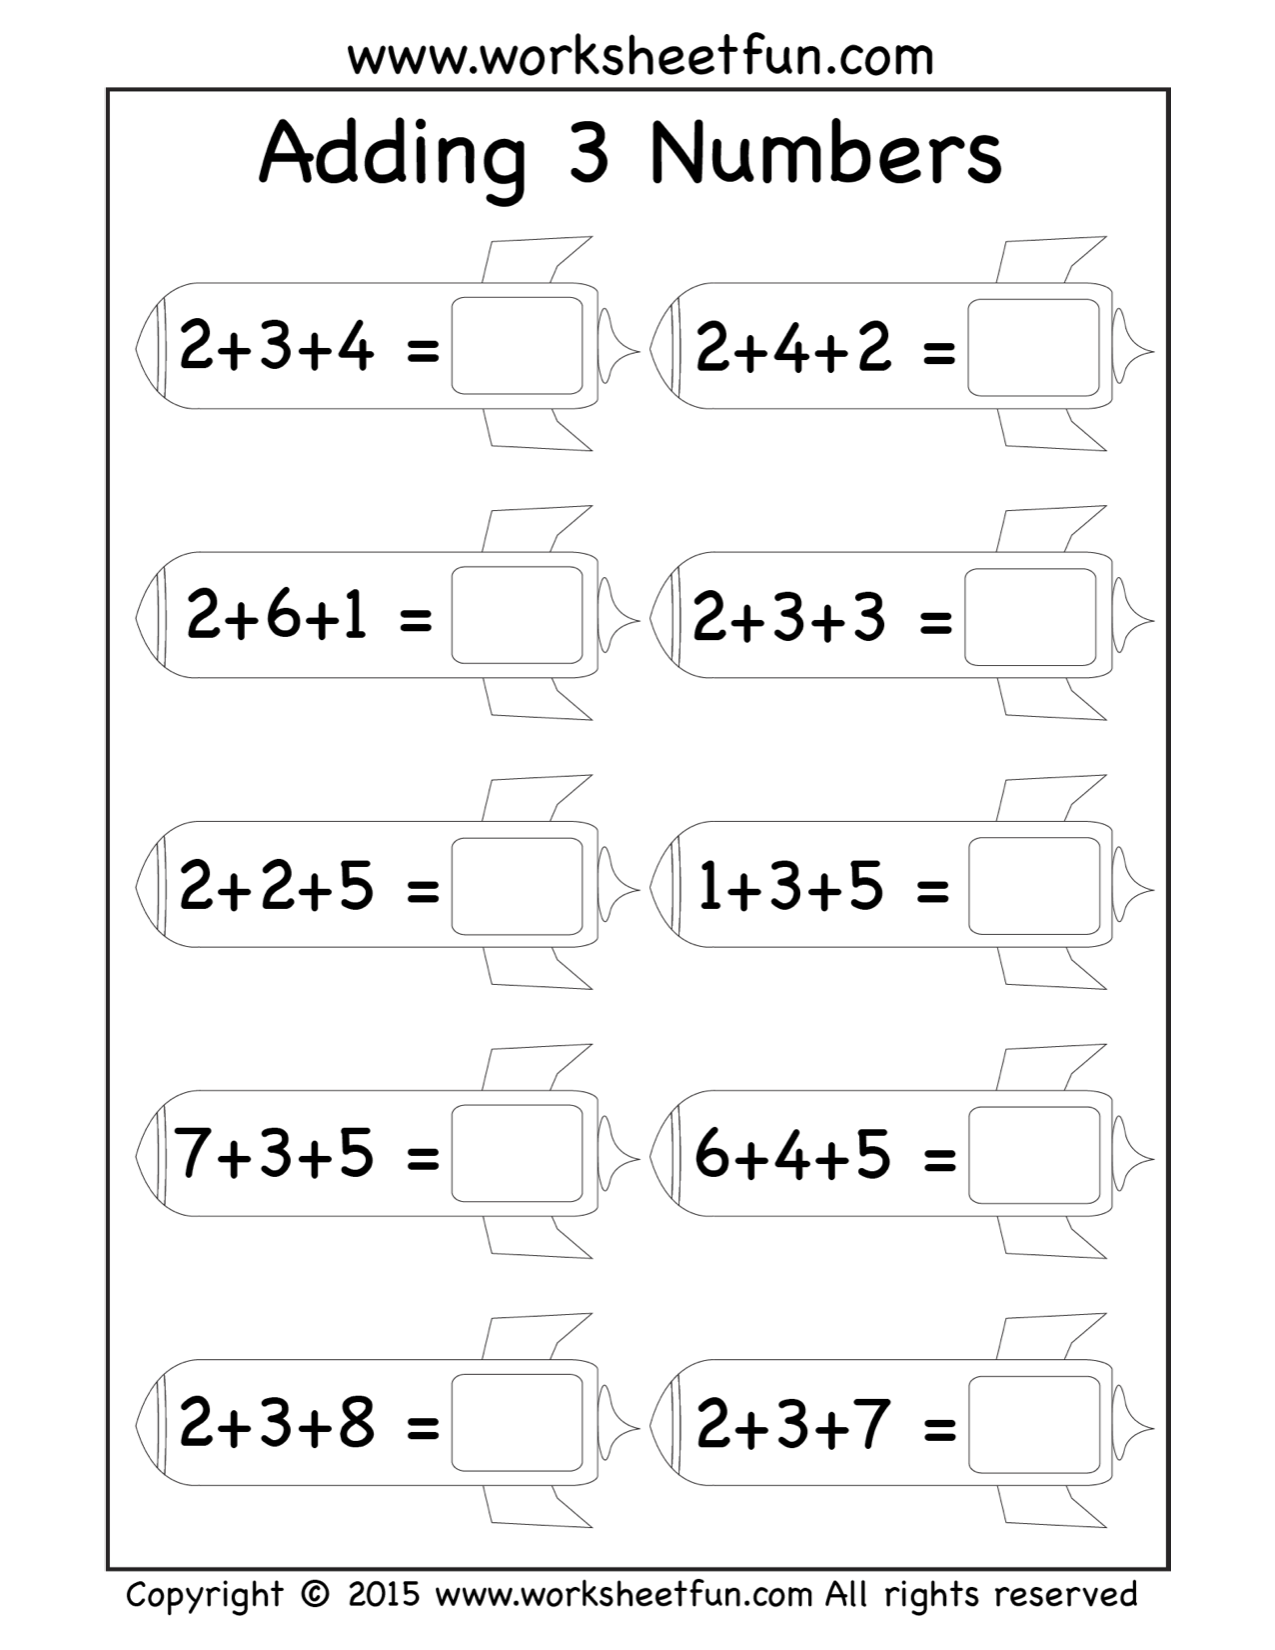 Free Three Addend Worksheets ~ Adding 3 Numbers Rockets | First ...